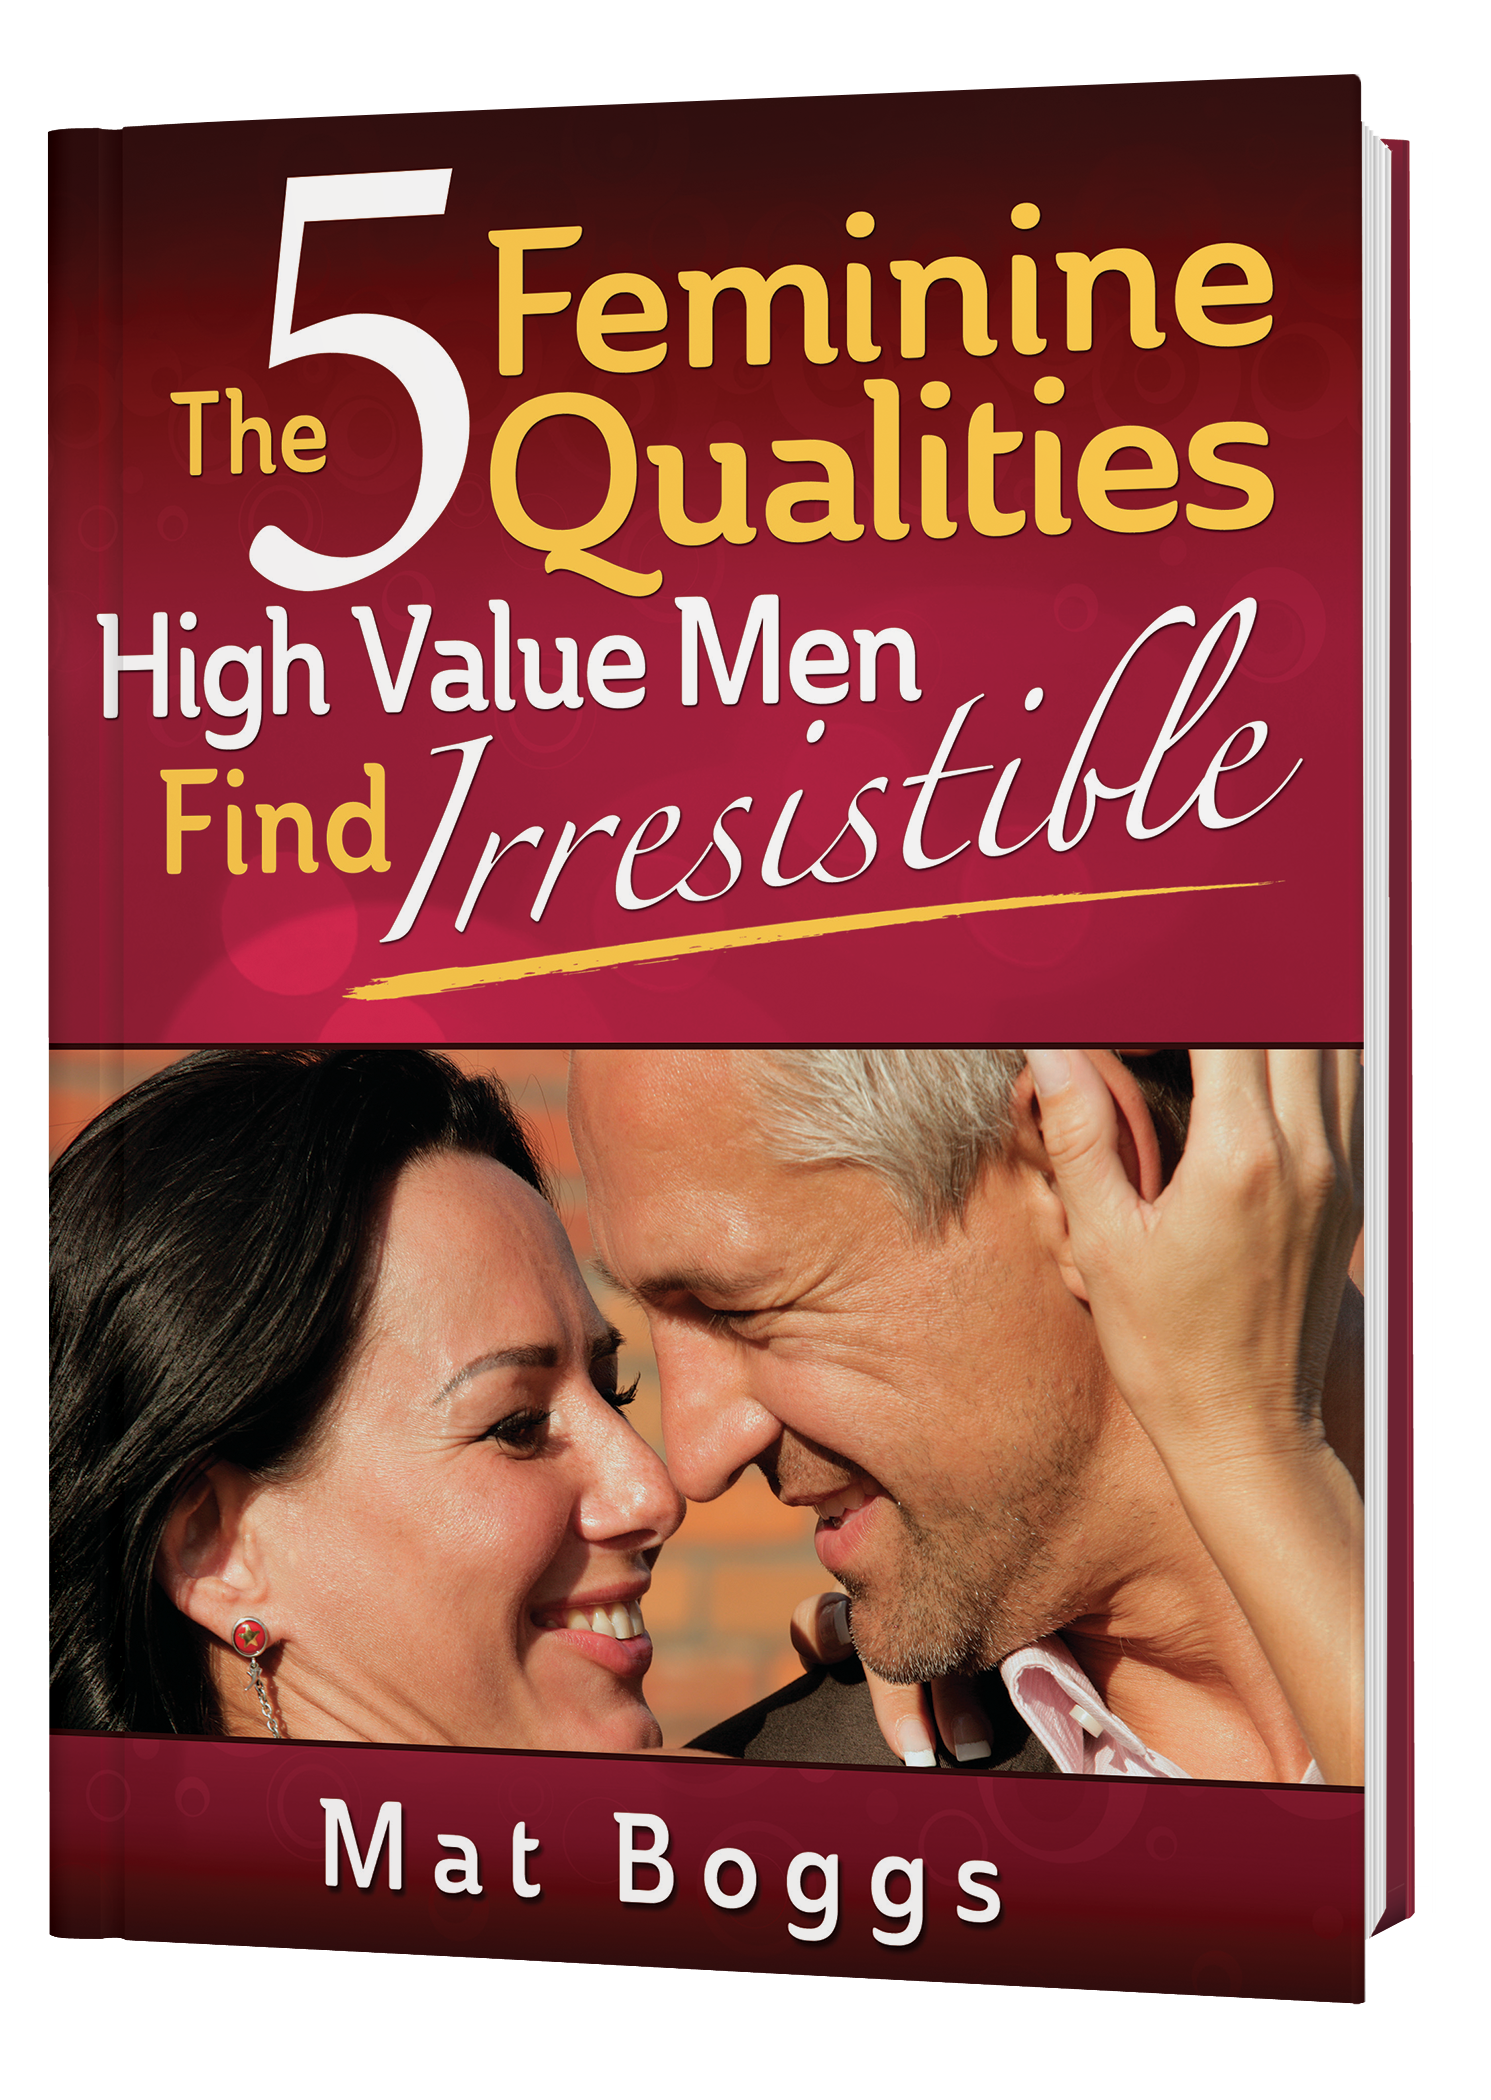 The 5 Feminine Qualities High-Quality Men Find Irresistible